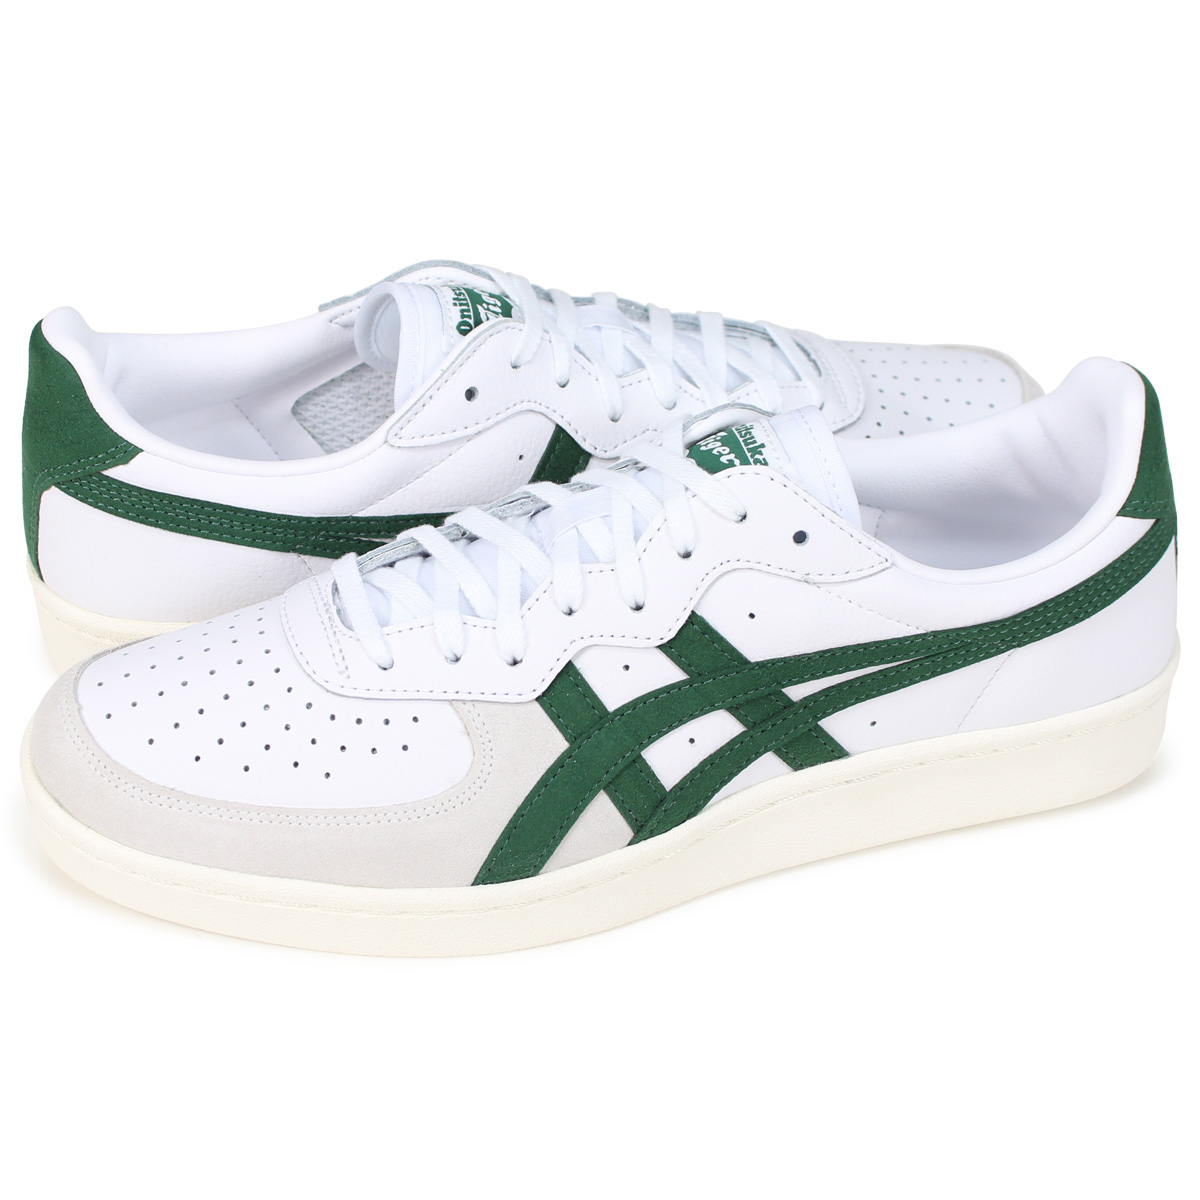 official photos 60739 8da04 Onitsuka Tiger GSM Onitsuka Thailand ghazi S M men sneakers TH5K2Y-101  white [8/2 Shinnyu load]